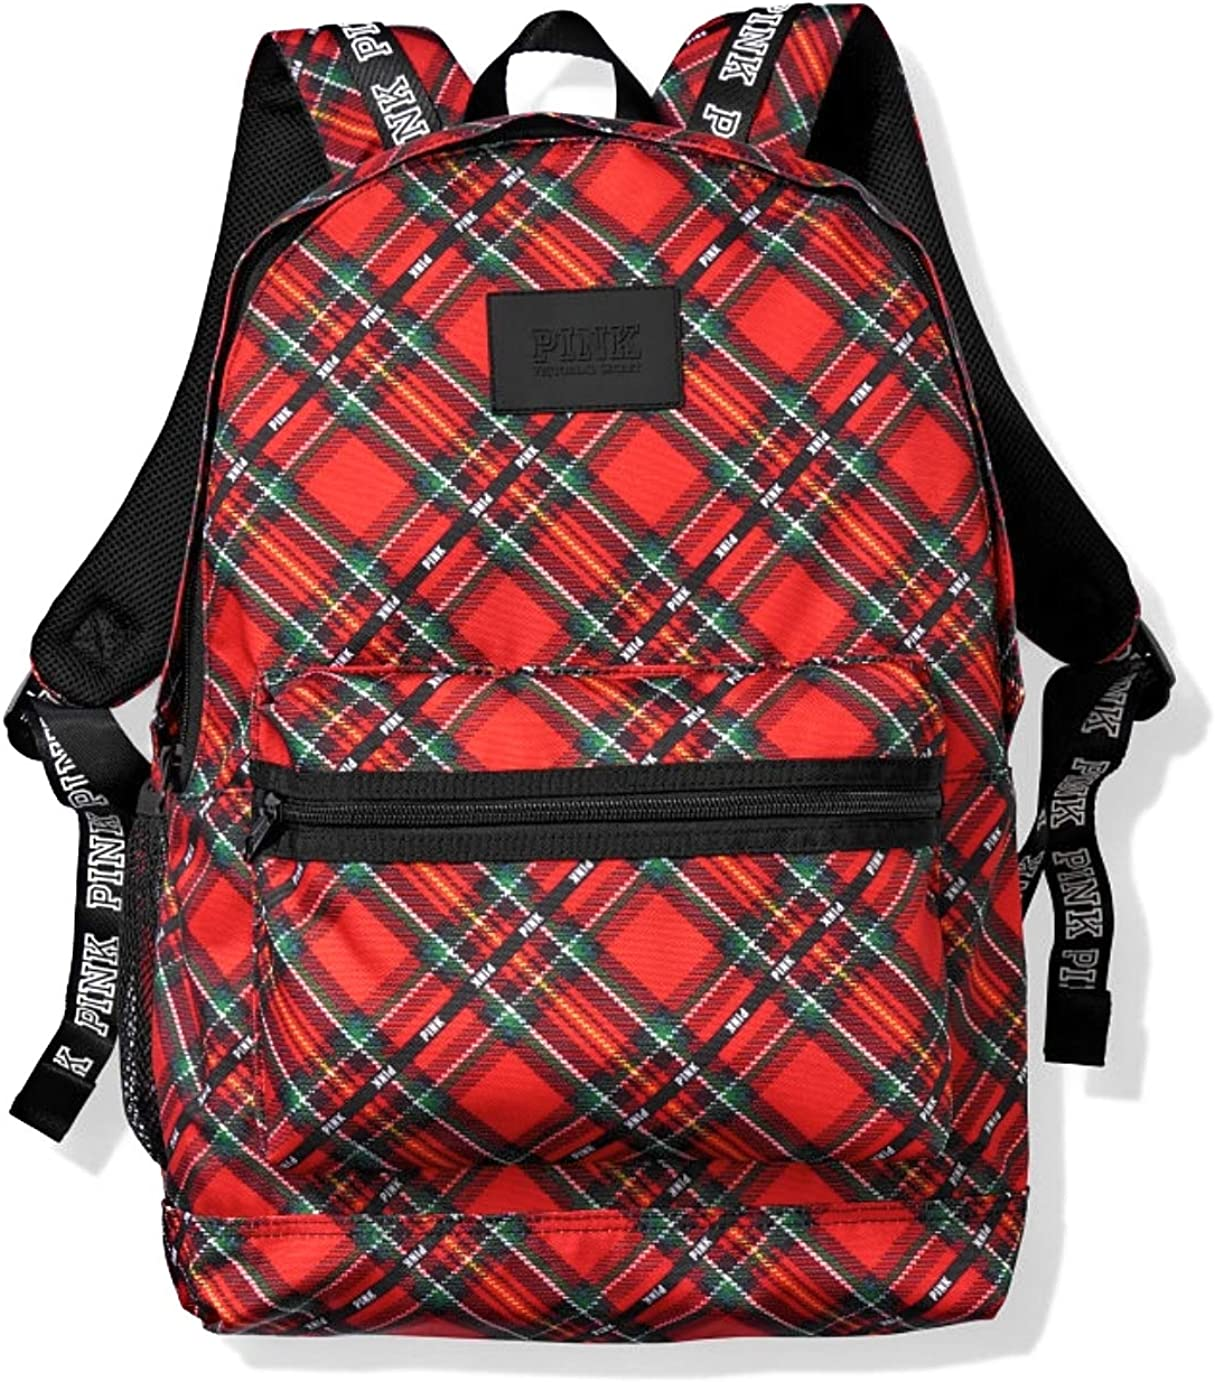 Victoria s Secret Pink Campus Backpack, Red Plaid